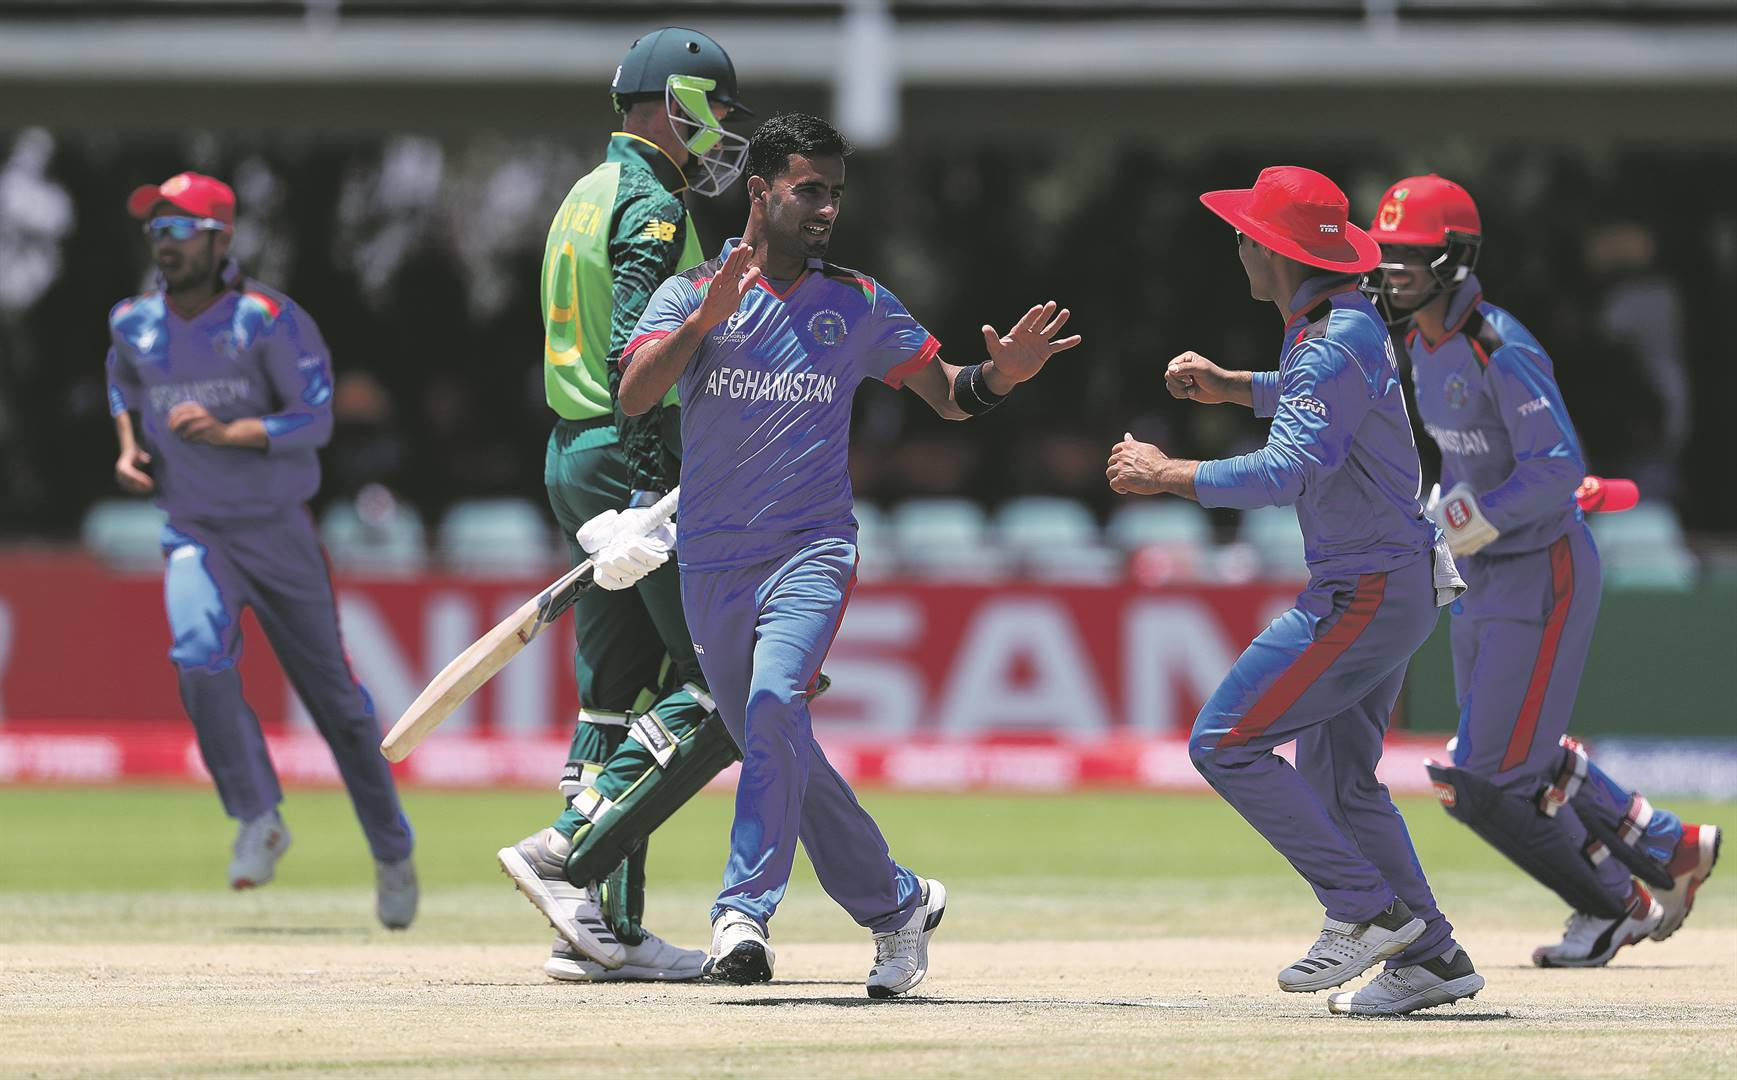 Shafiqullah Ghafari of Afghanistan scooped all the praises for his demolition of the young Proteas on Friday. Picture: Matthew Lewis / Getty Images